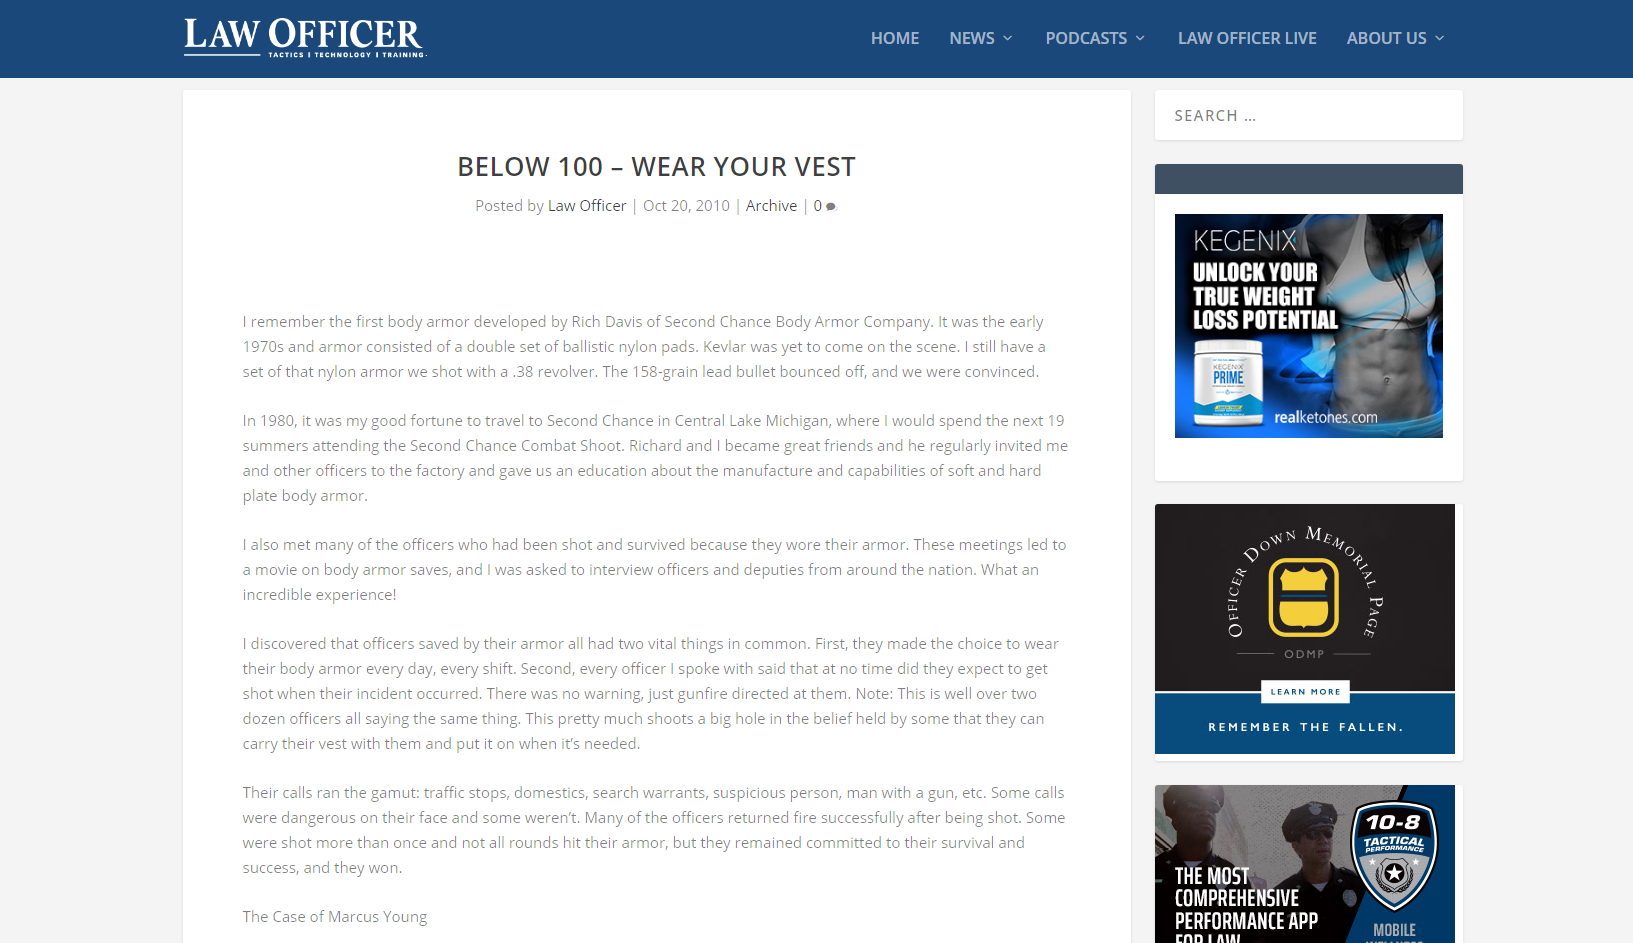 Article on website about wearing your body armor